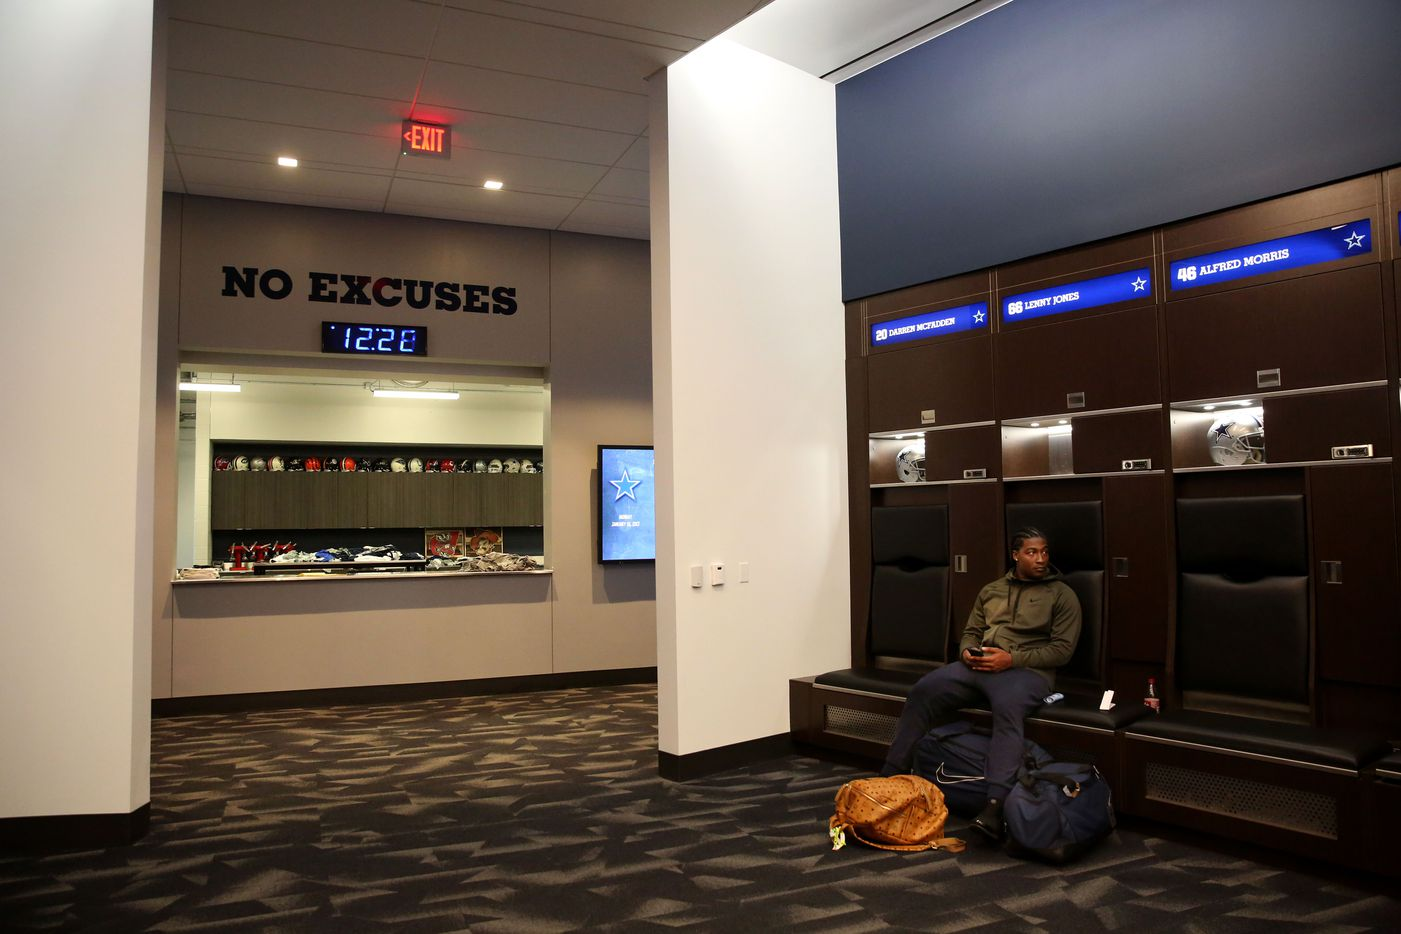 Dallas Cowboys linebacker Lenny Jones sits at his locker after cleaning it out at The Star in Frisco, Texas, on Jan. 16, 2017. The Cowboys lost against the Green Bay Packers 34-31 in the NFC divisional round playoff game, ending their 13-3 season.